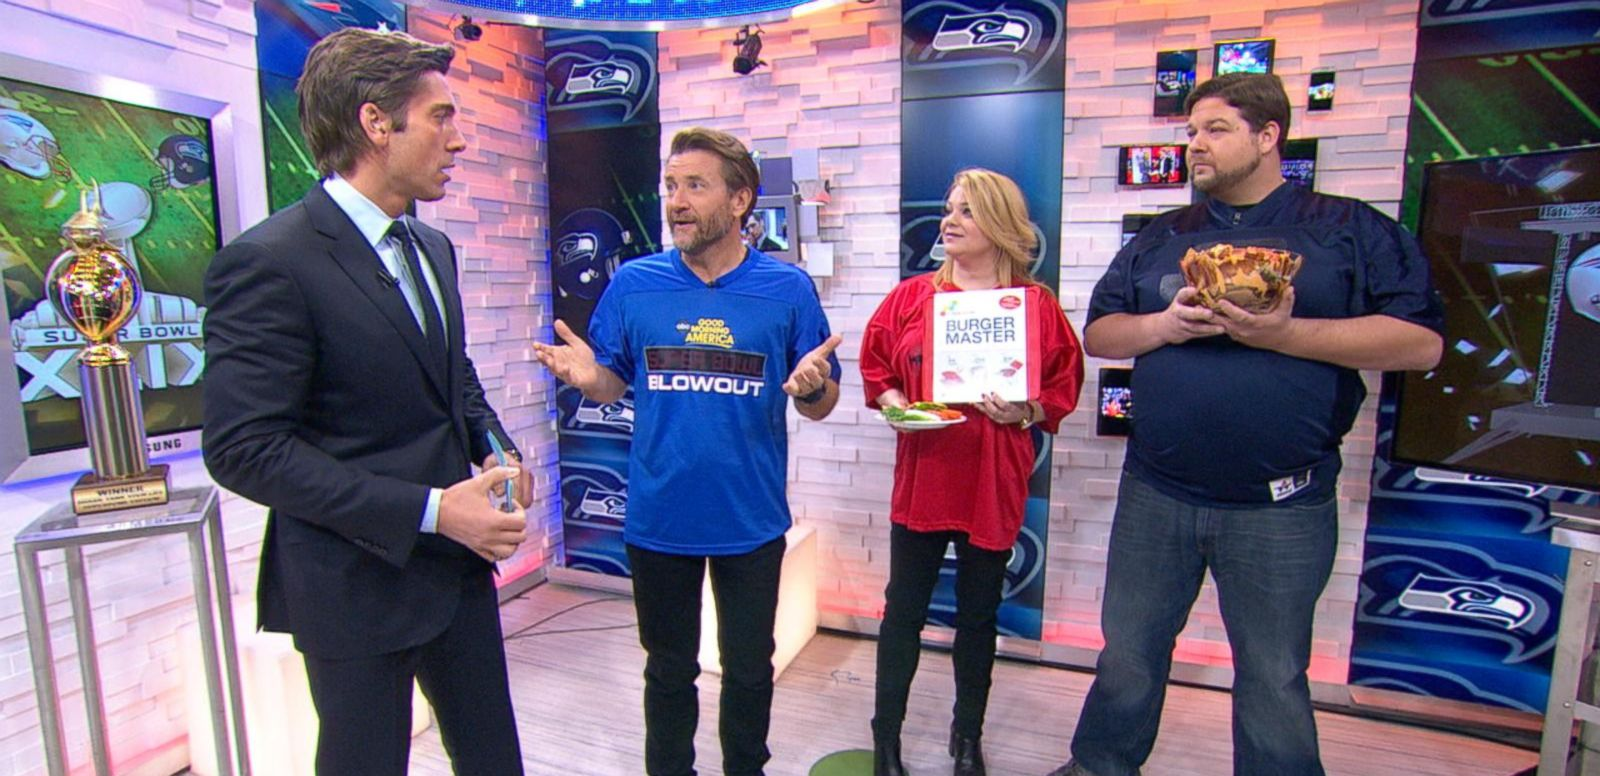 VIDEO: 'Shark Tank' Investors Decide the Ultimate Super Bowl Snack